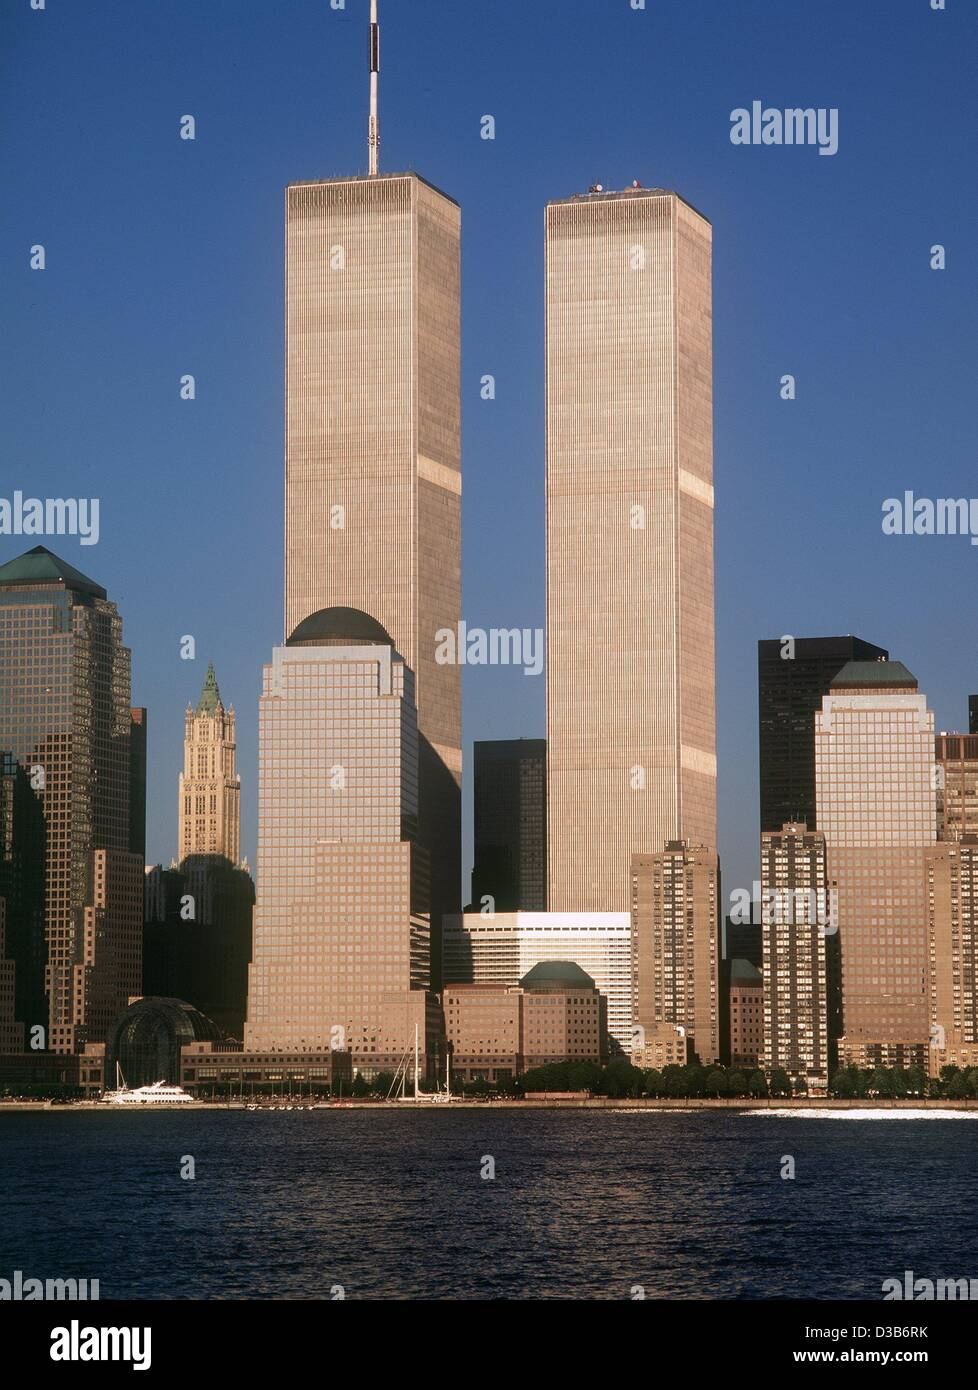 (dpa) - The Manhattan skyline until 11 September 2001: The twin towers of the World Trade Center rise high above - Stock Image